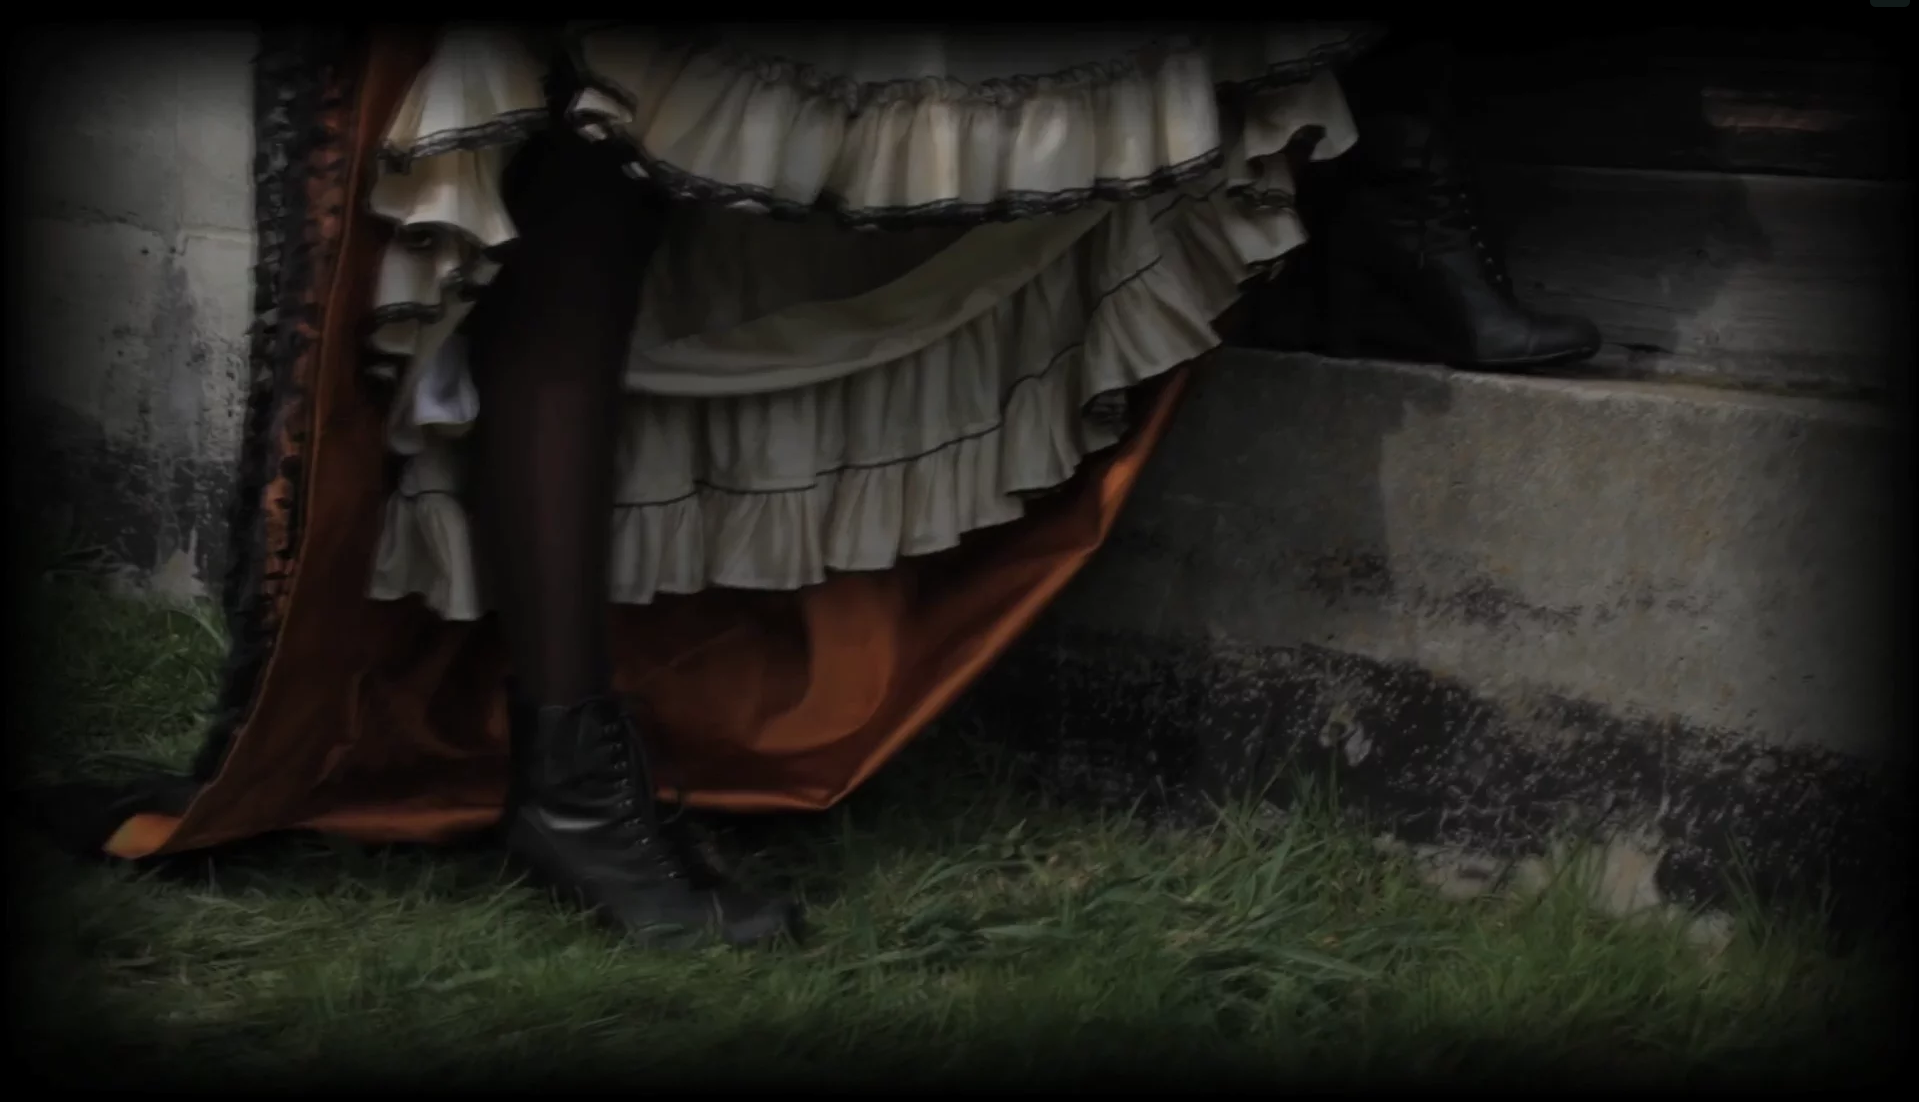 Screen capture from The Stroll: Prostitution through history